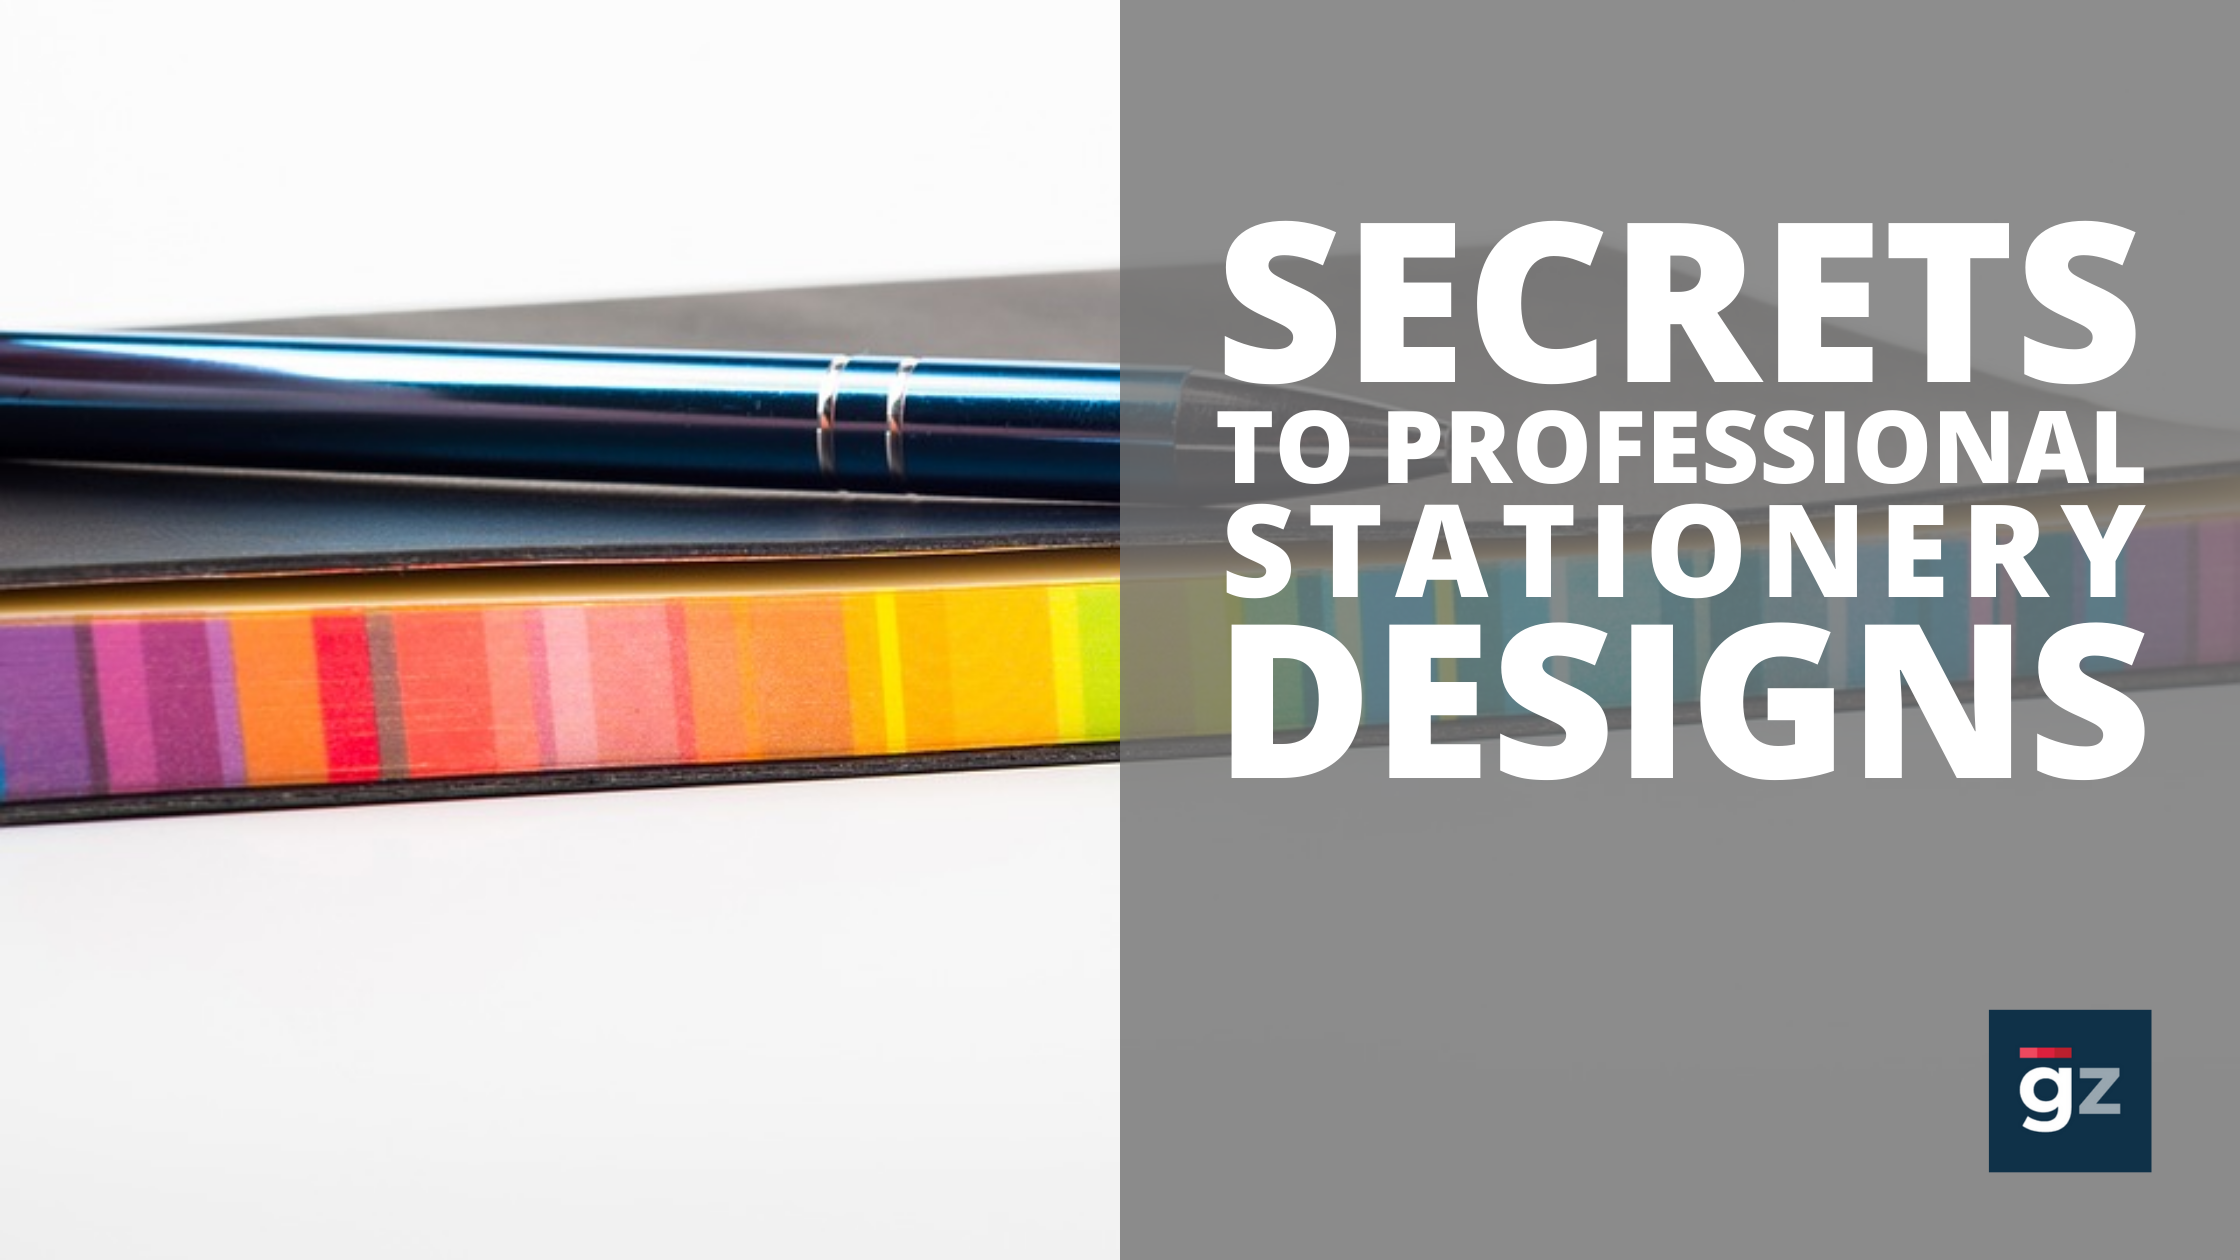 1592466420Secrets To Professional Stationery Designs (1)